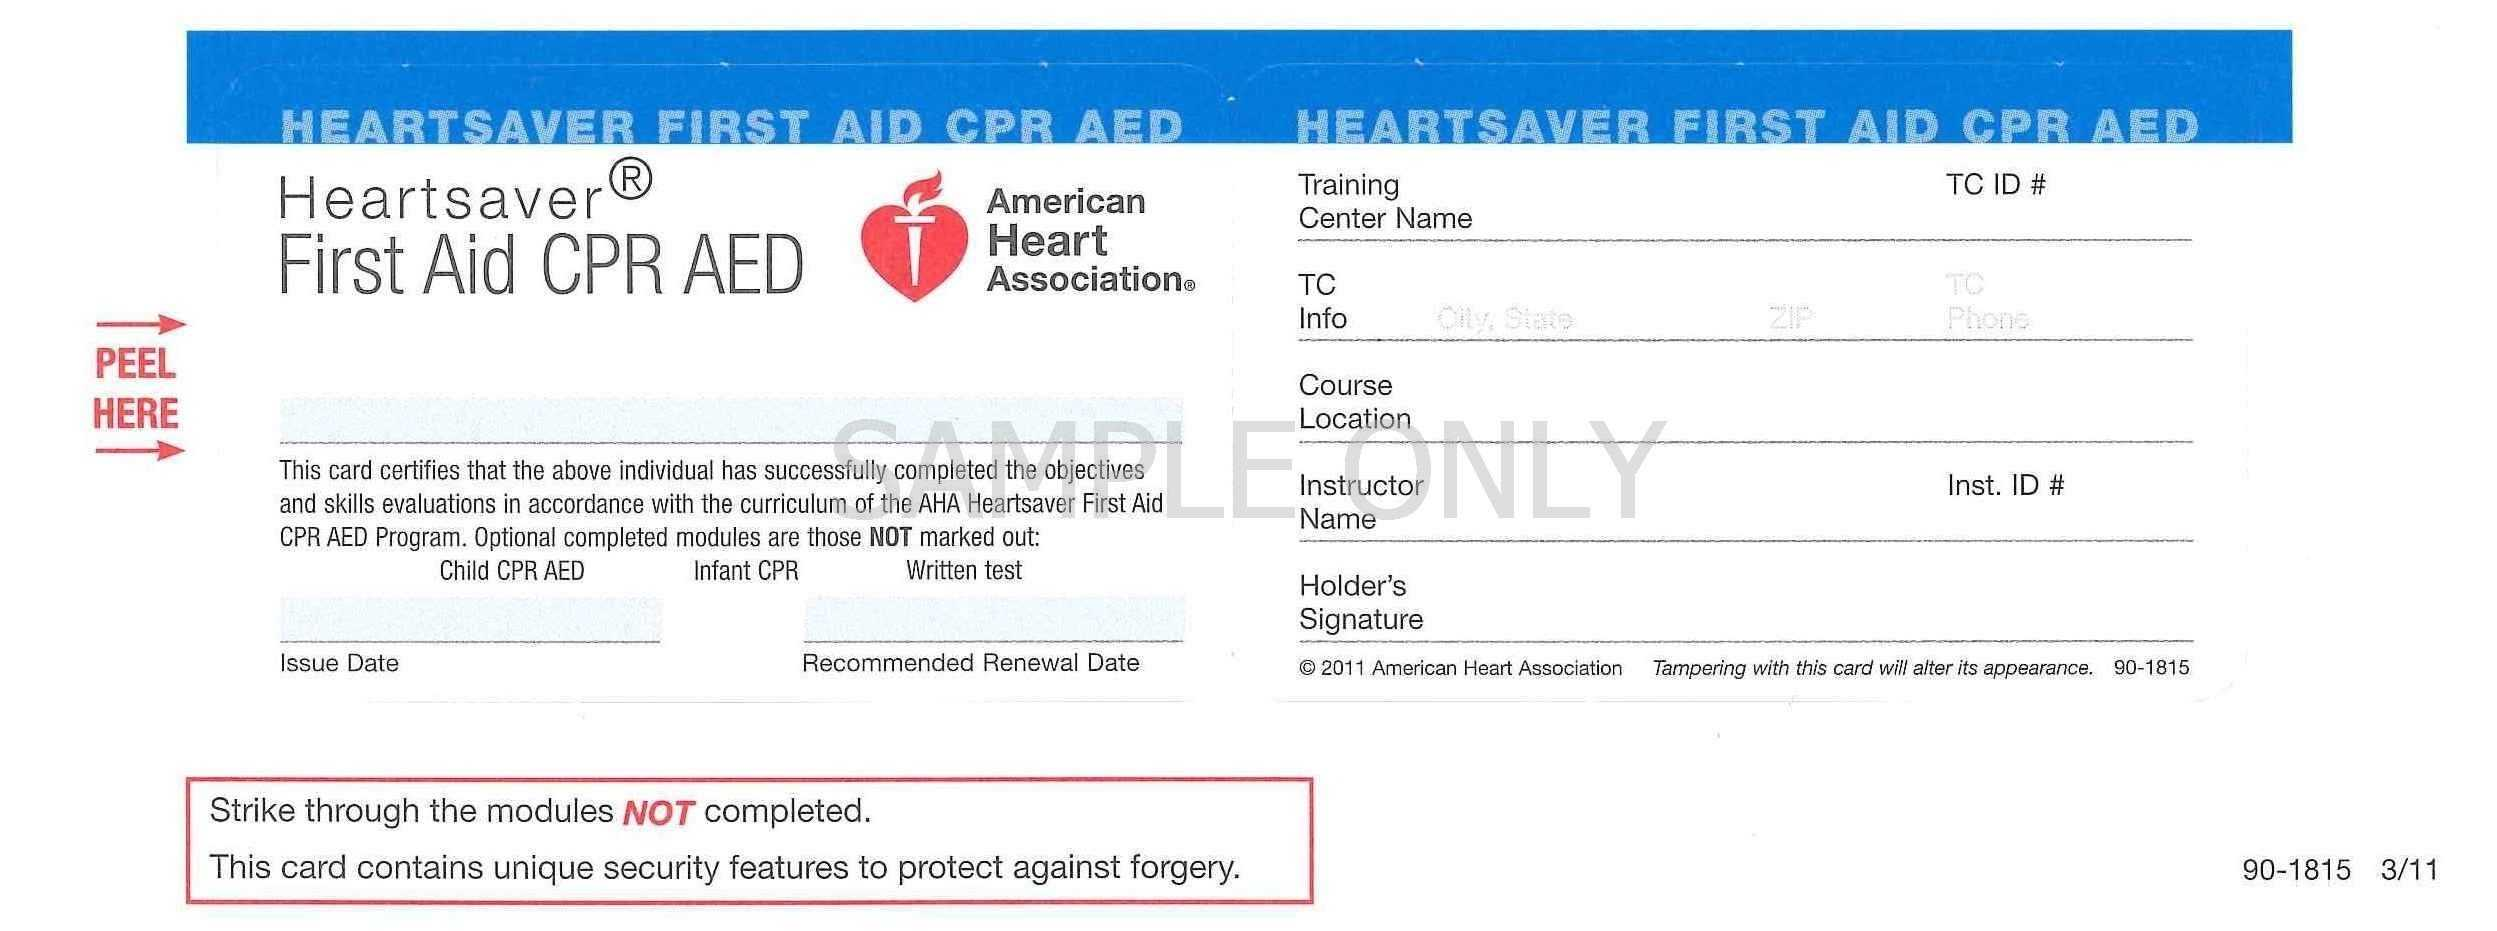 Cf6 Cpr Card Template | Wiring Library Intended For Cpr Card Template